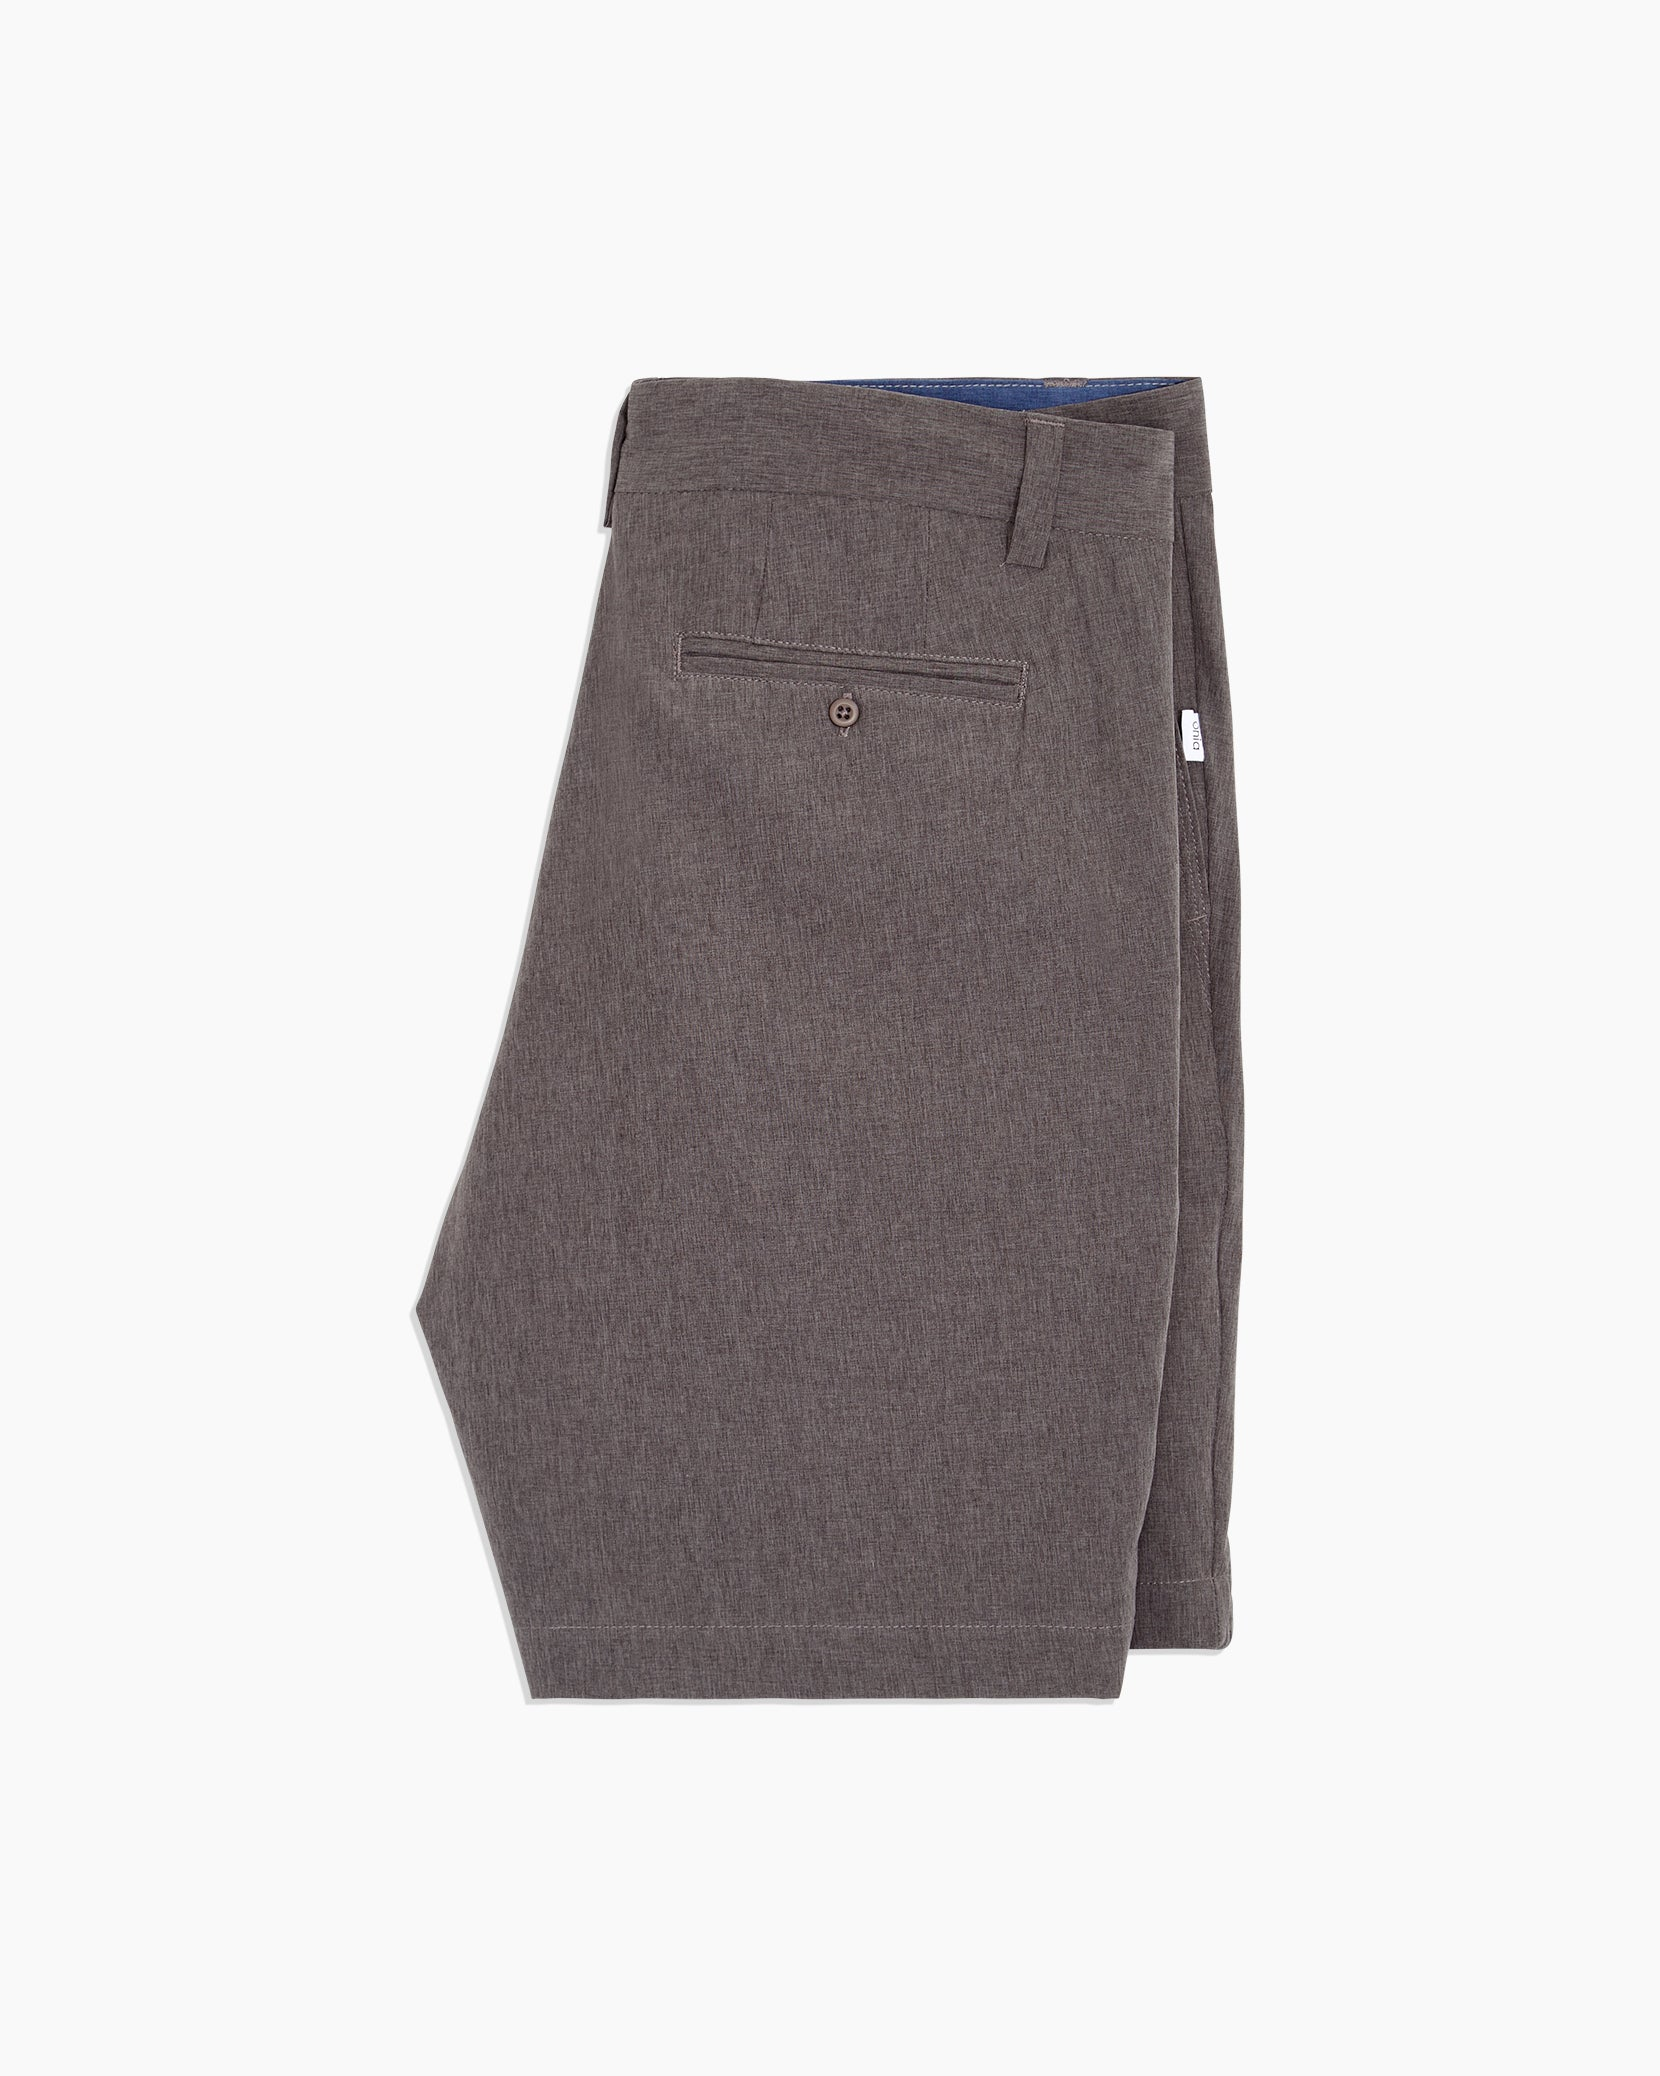 Versatility Stretch Chambray Short in Charcoal - 14 - Onia